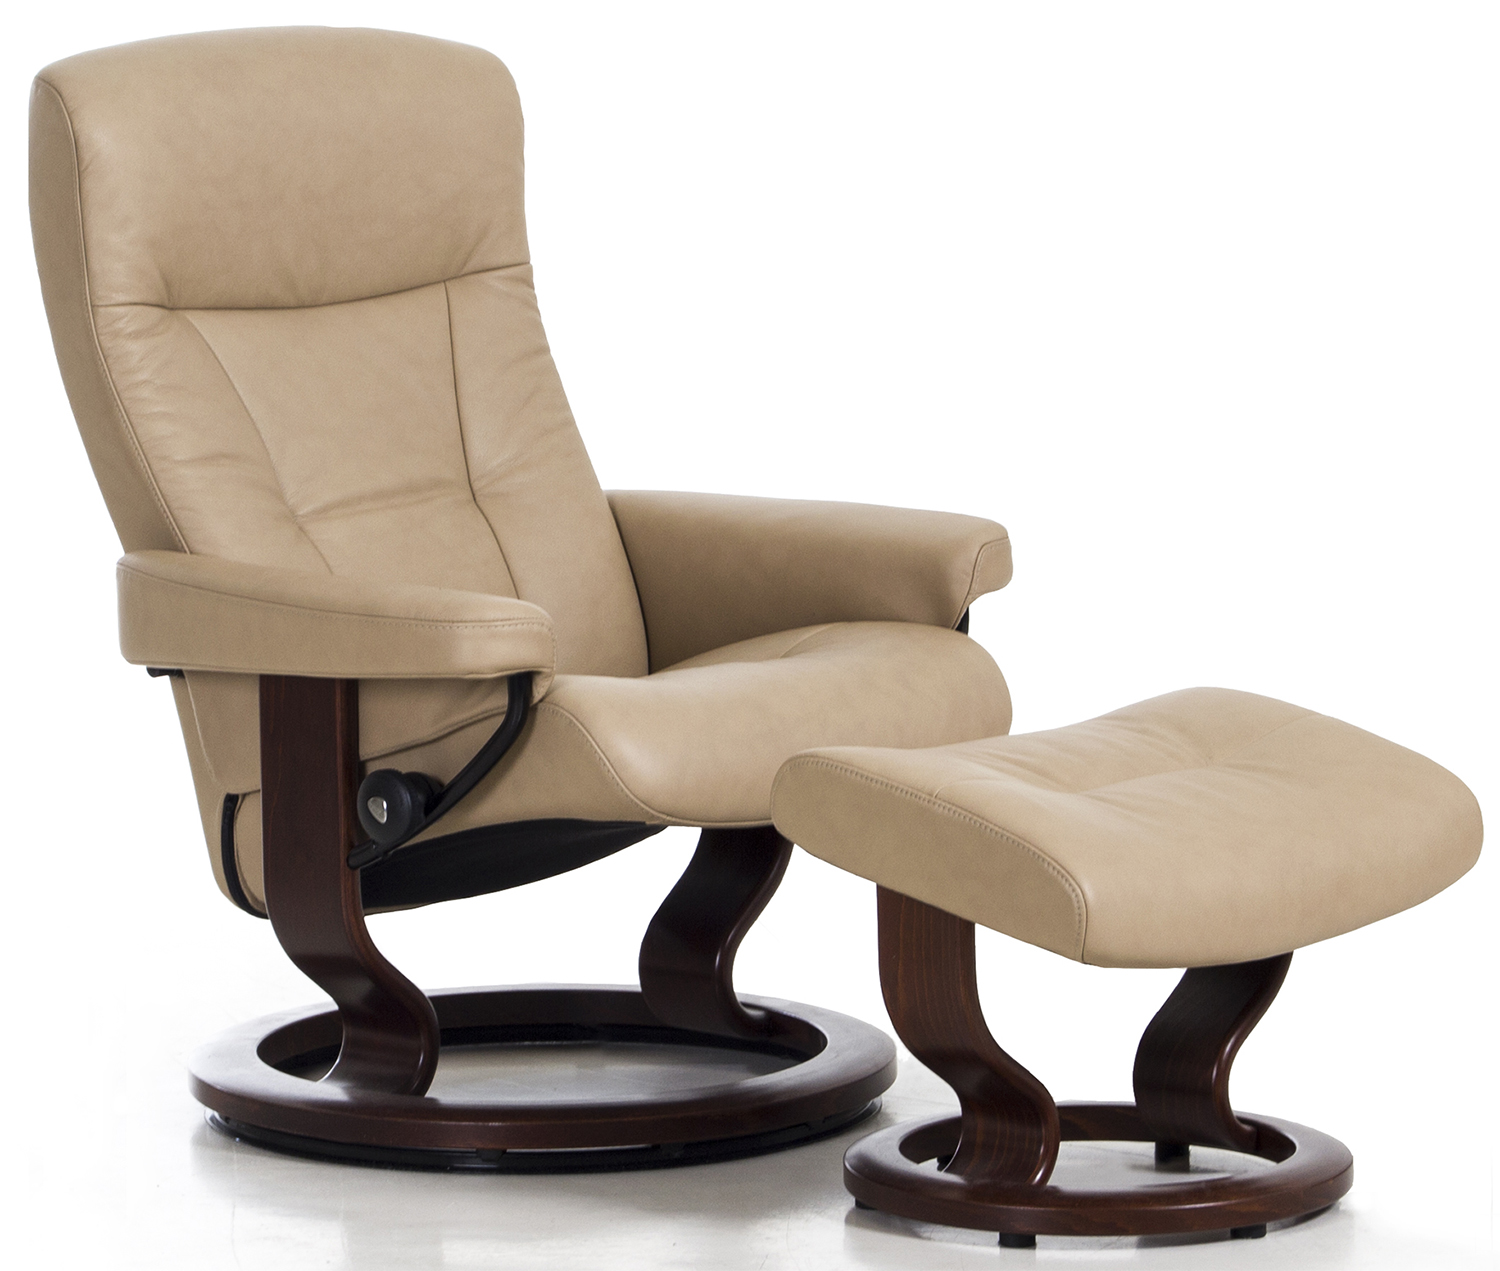 Stressless President Recliner Chair And Ottoman In Paloma Sand Leather